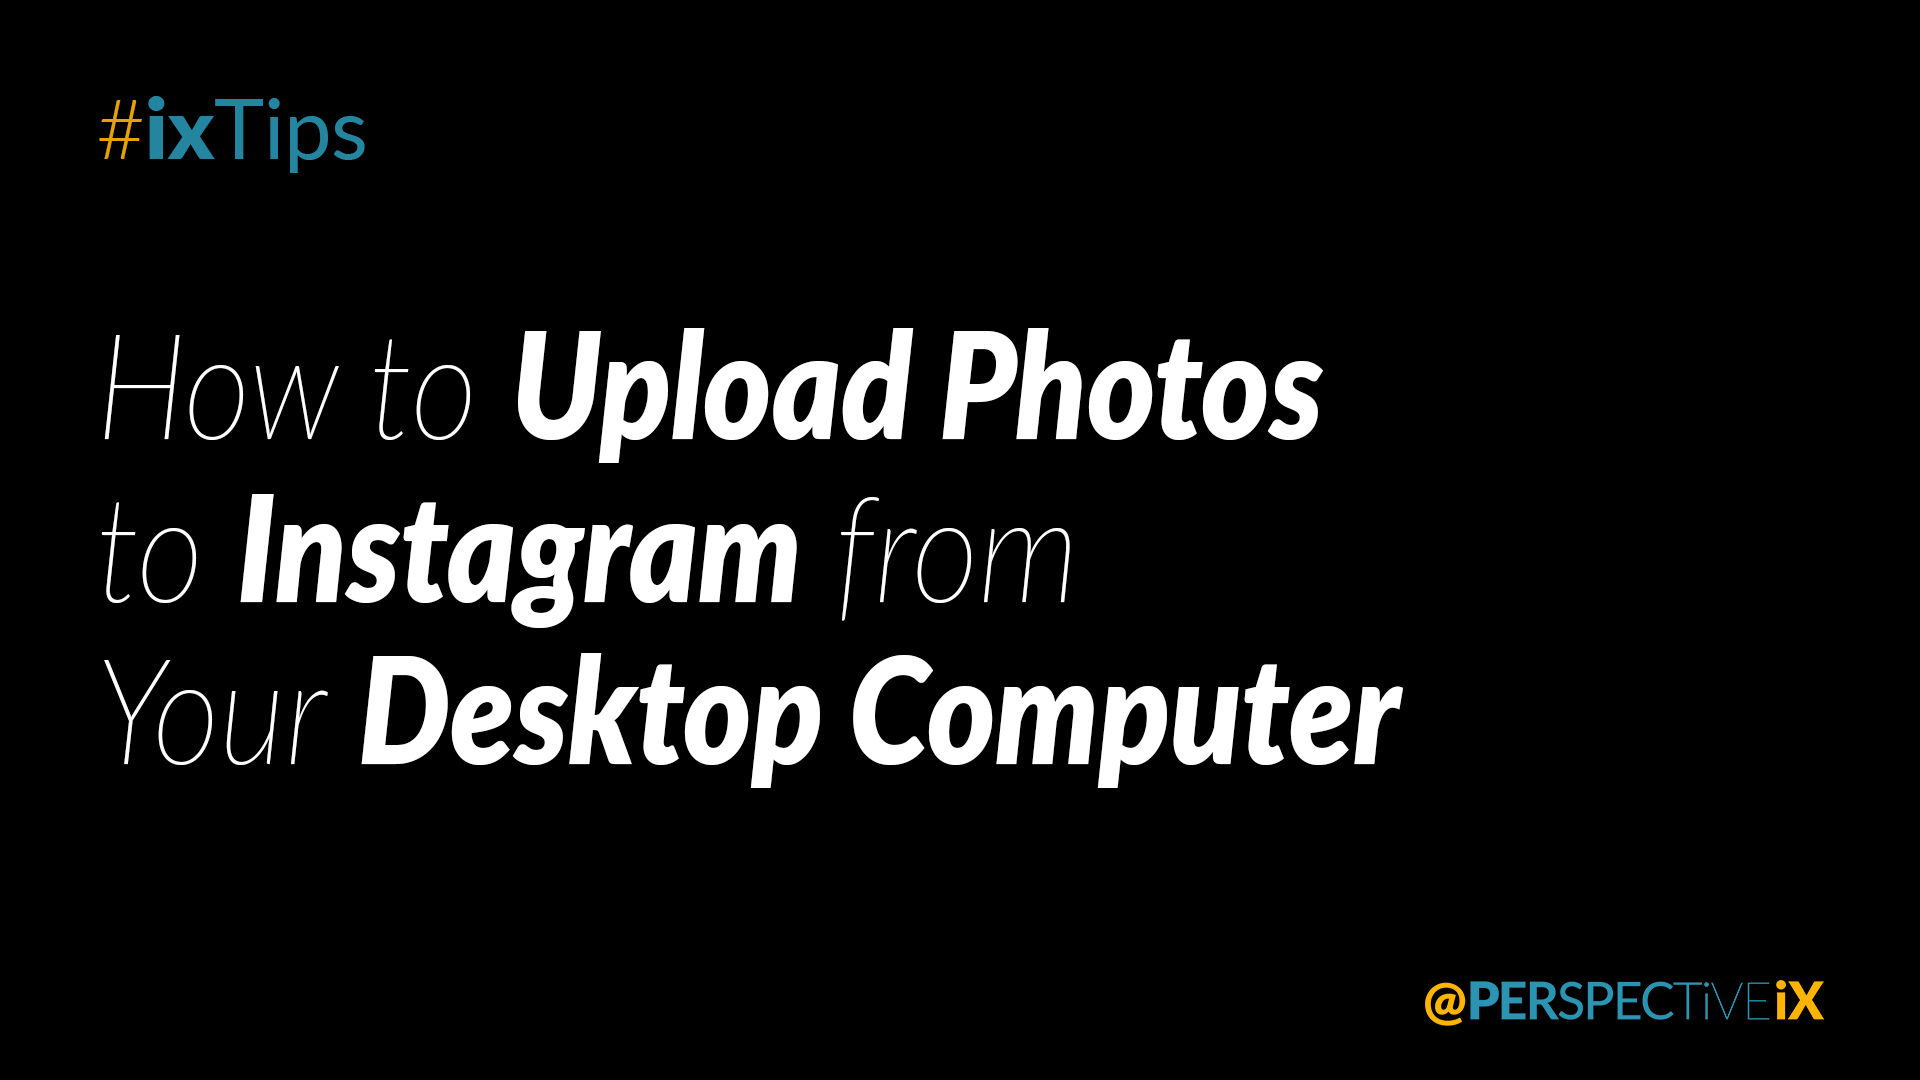 iX-Tips-How-to-Upload-Photos-to-Instagram-from-Your-Desktop-Computer.png